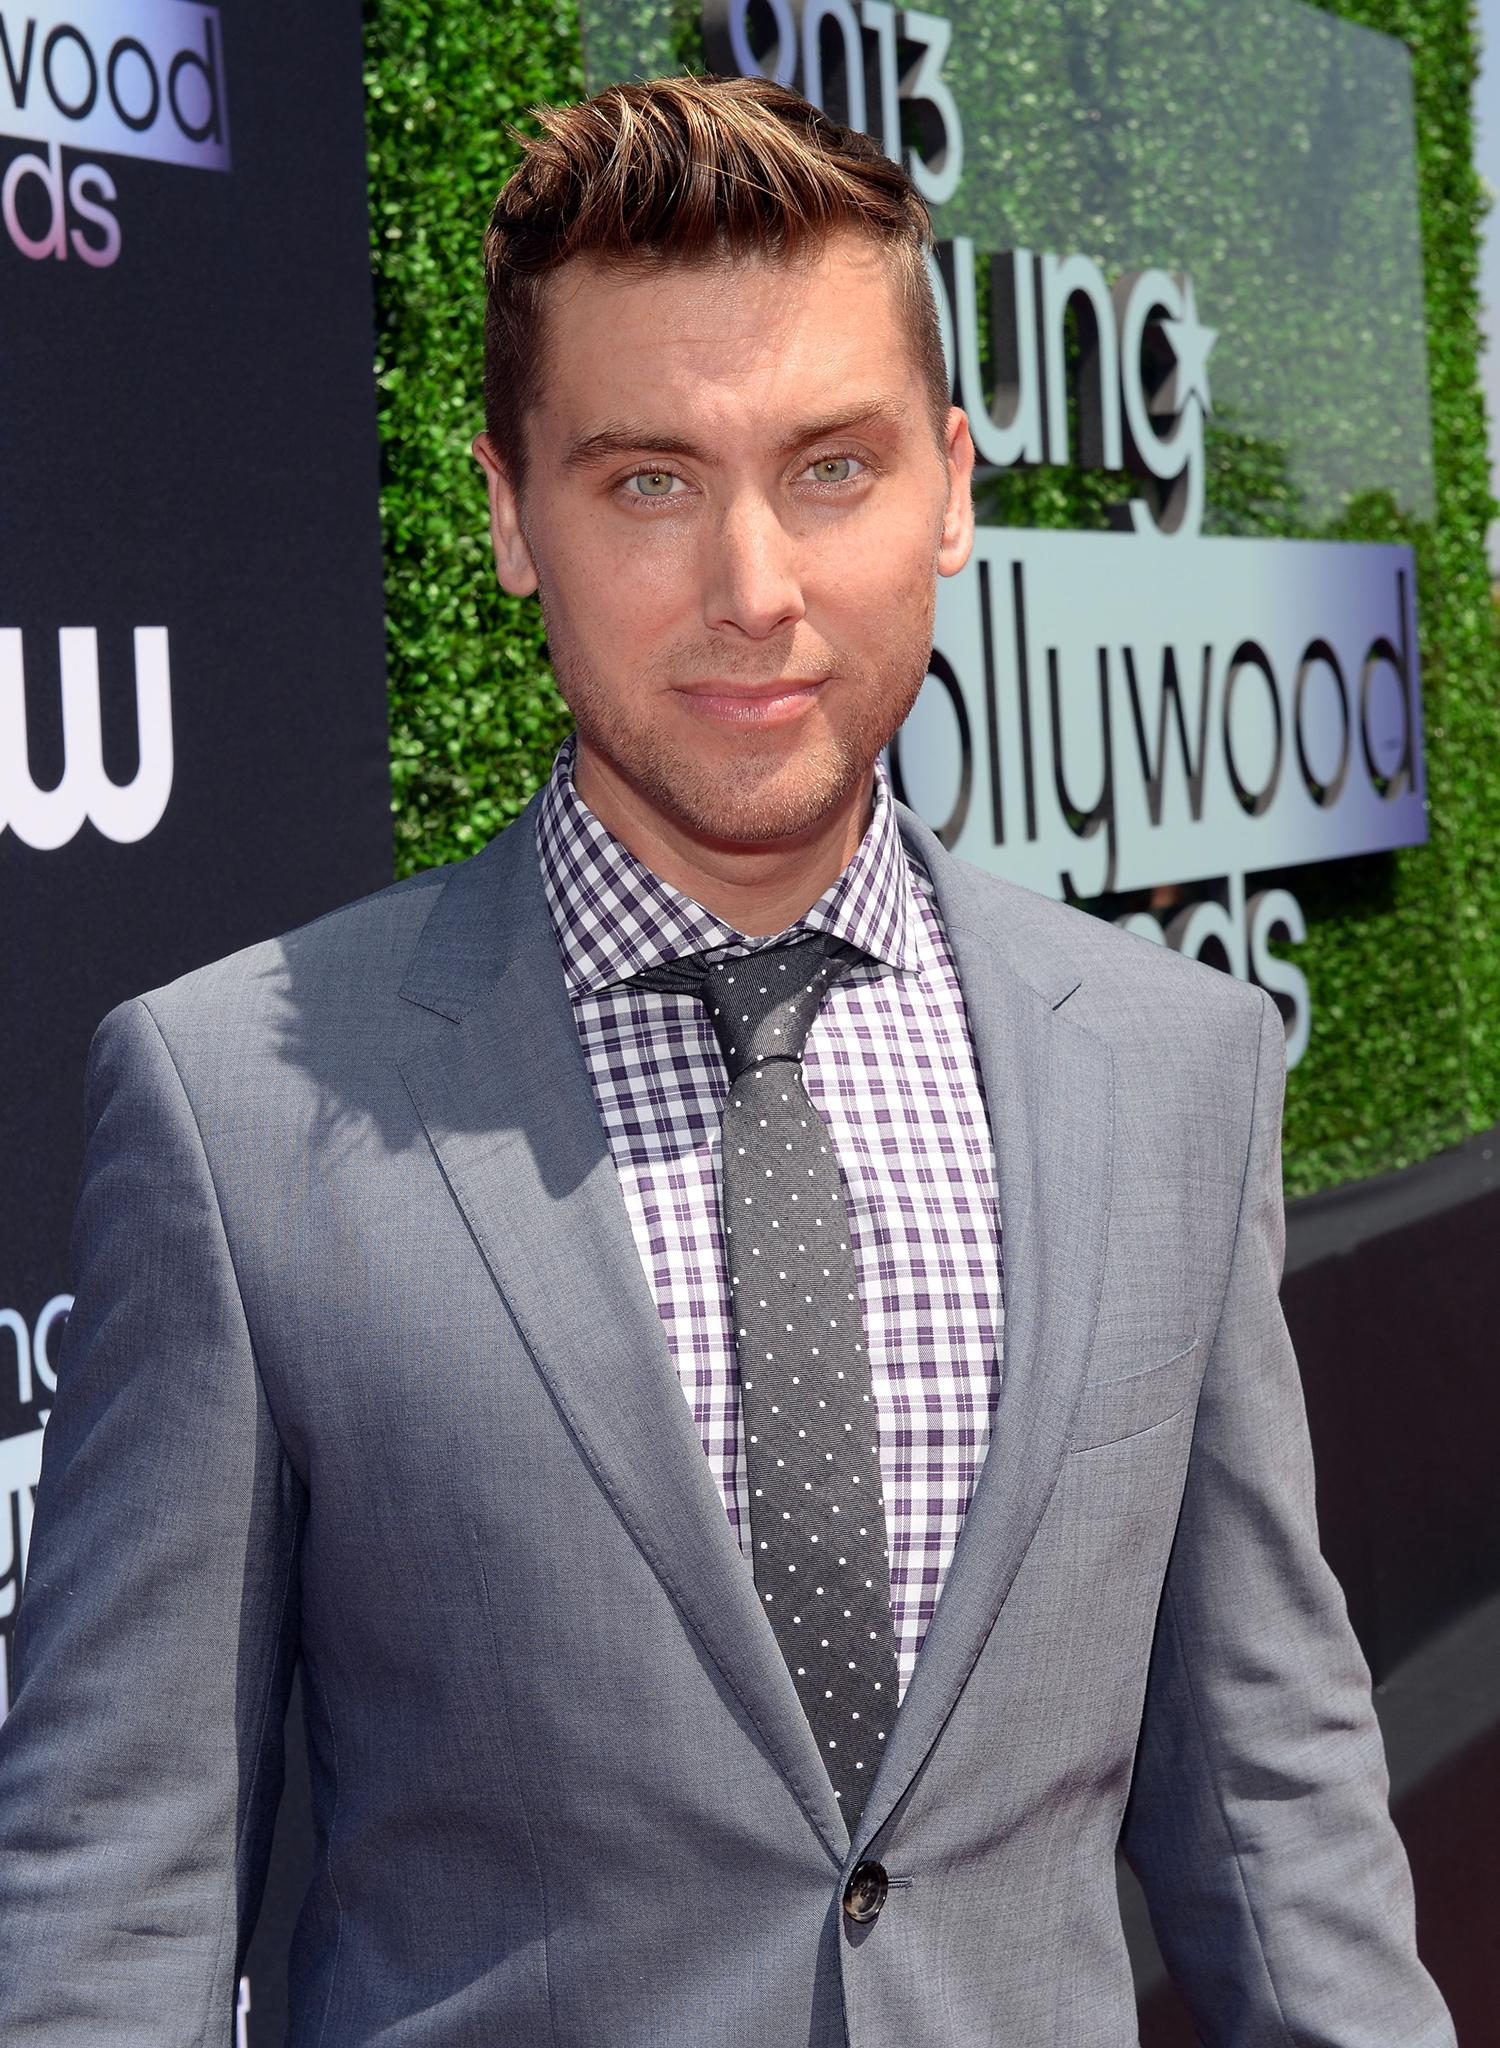 lance bass and michael turchin wedding